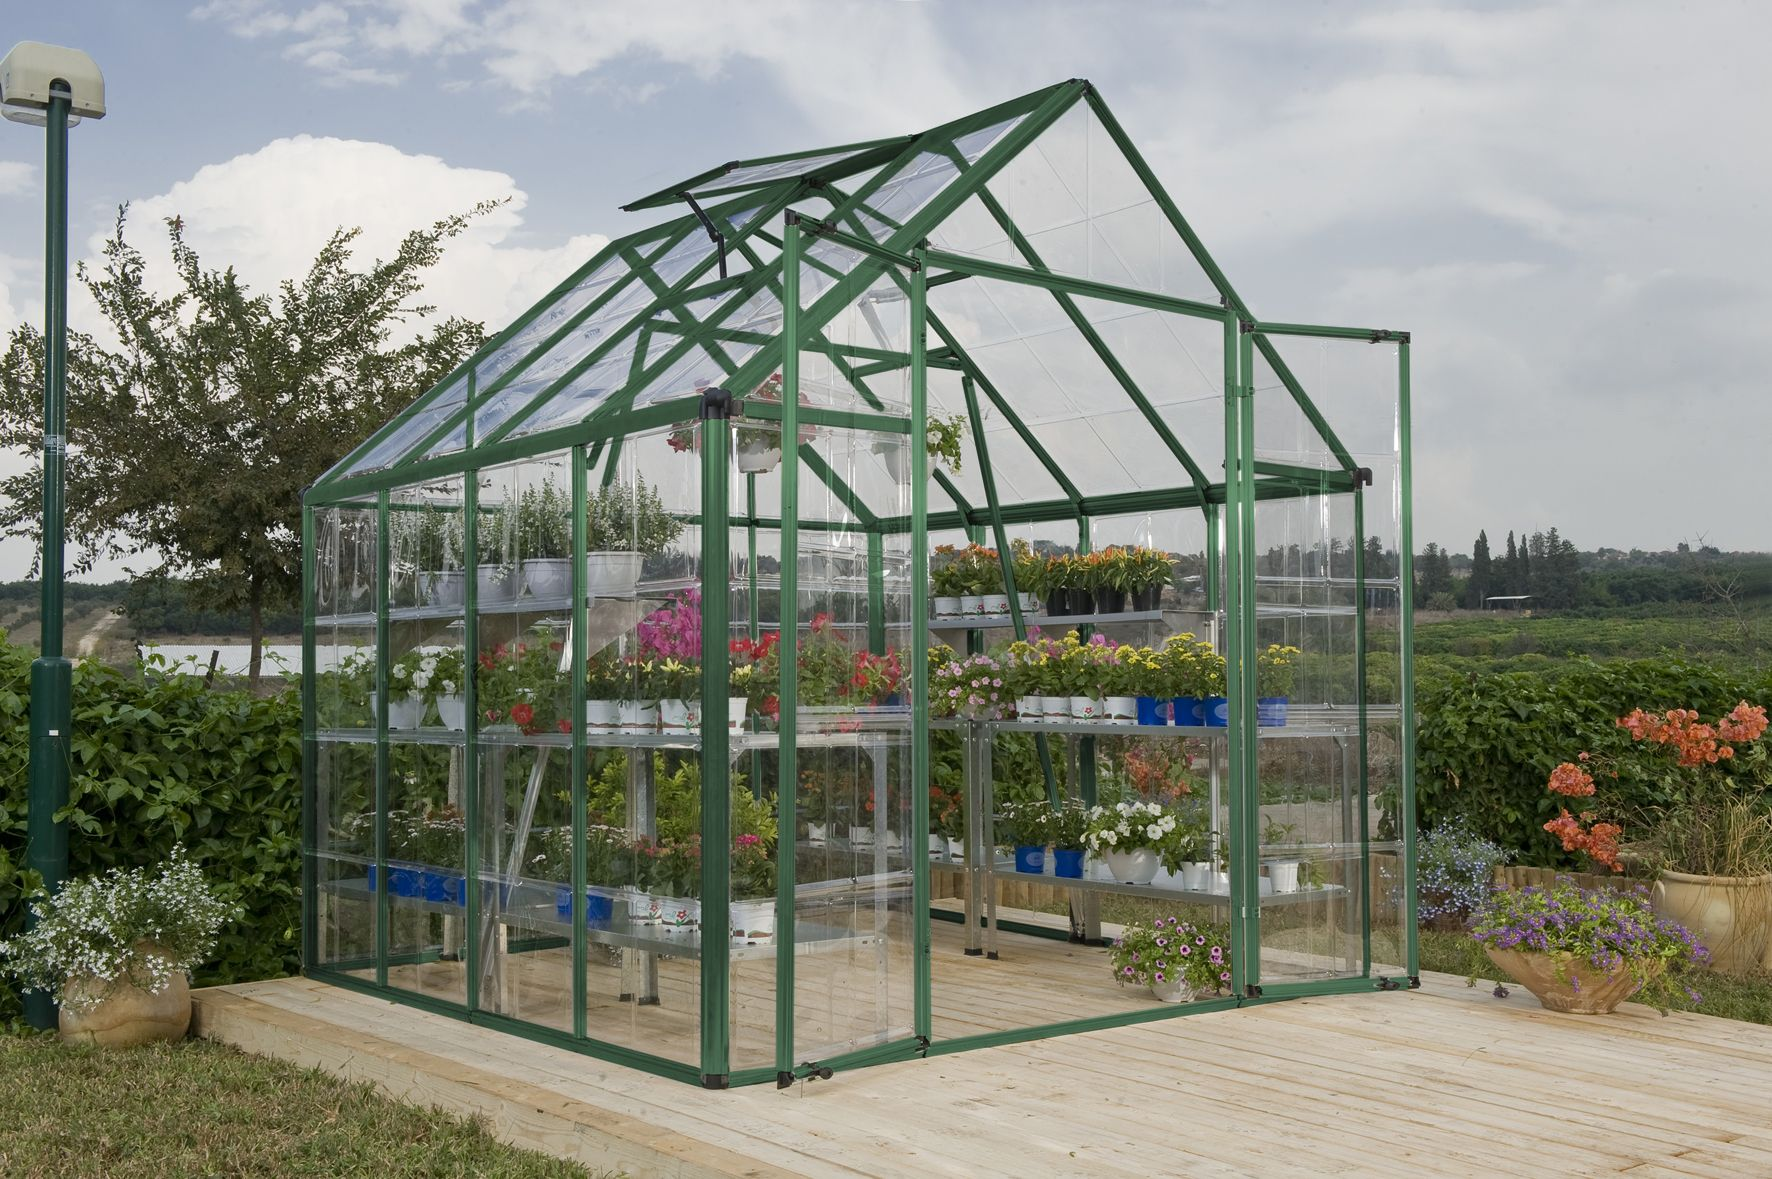 the snap and grow greenhouse assembles quickly and easily with the